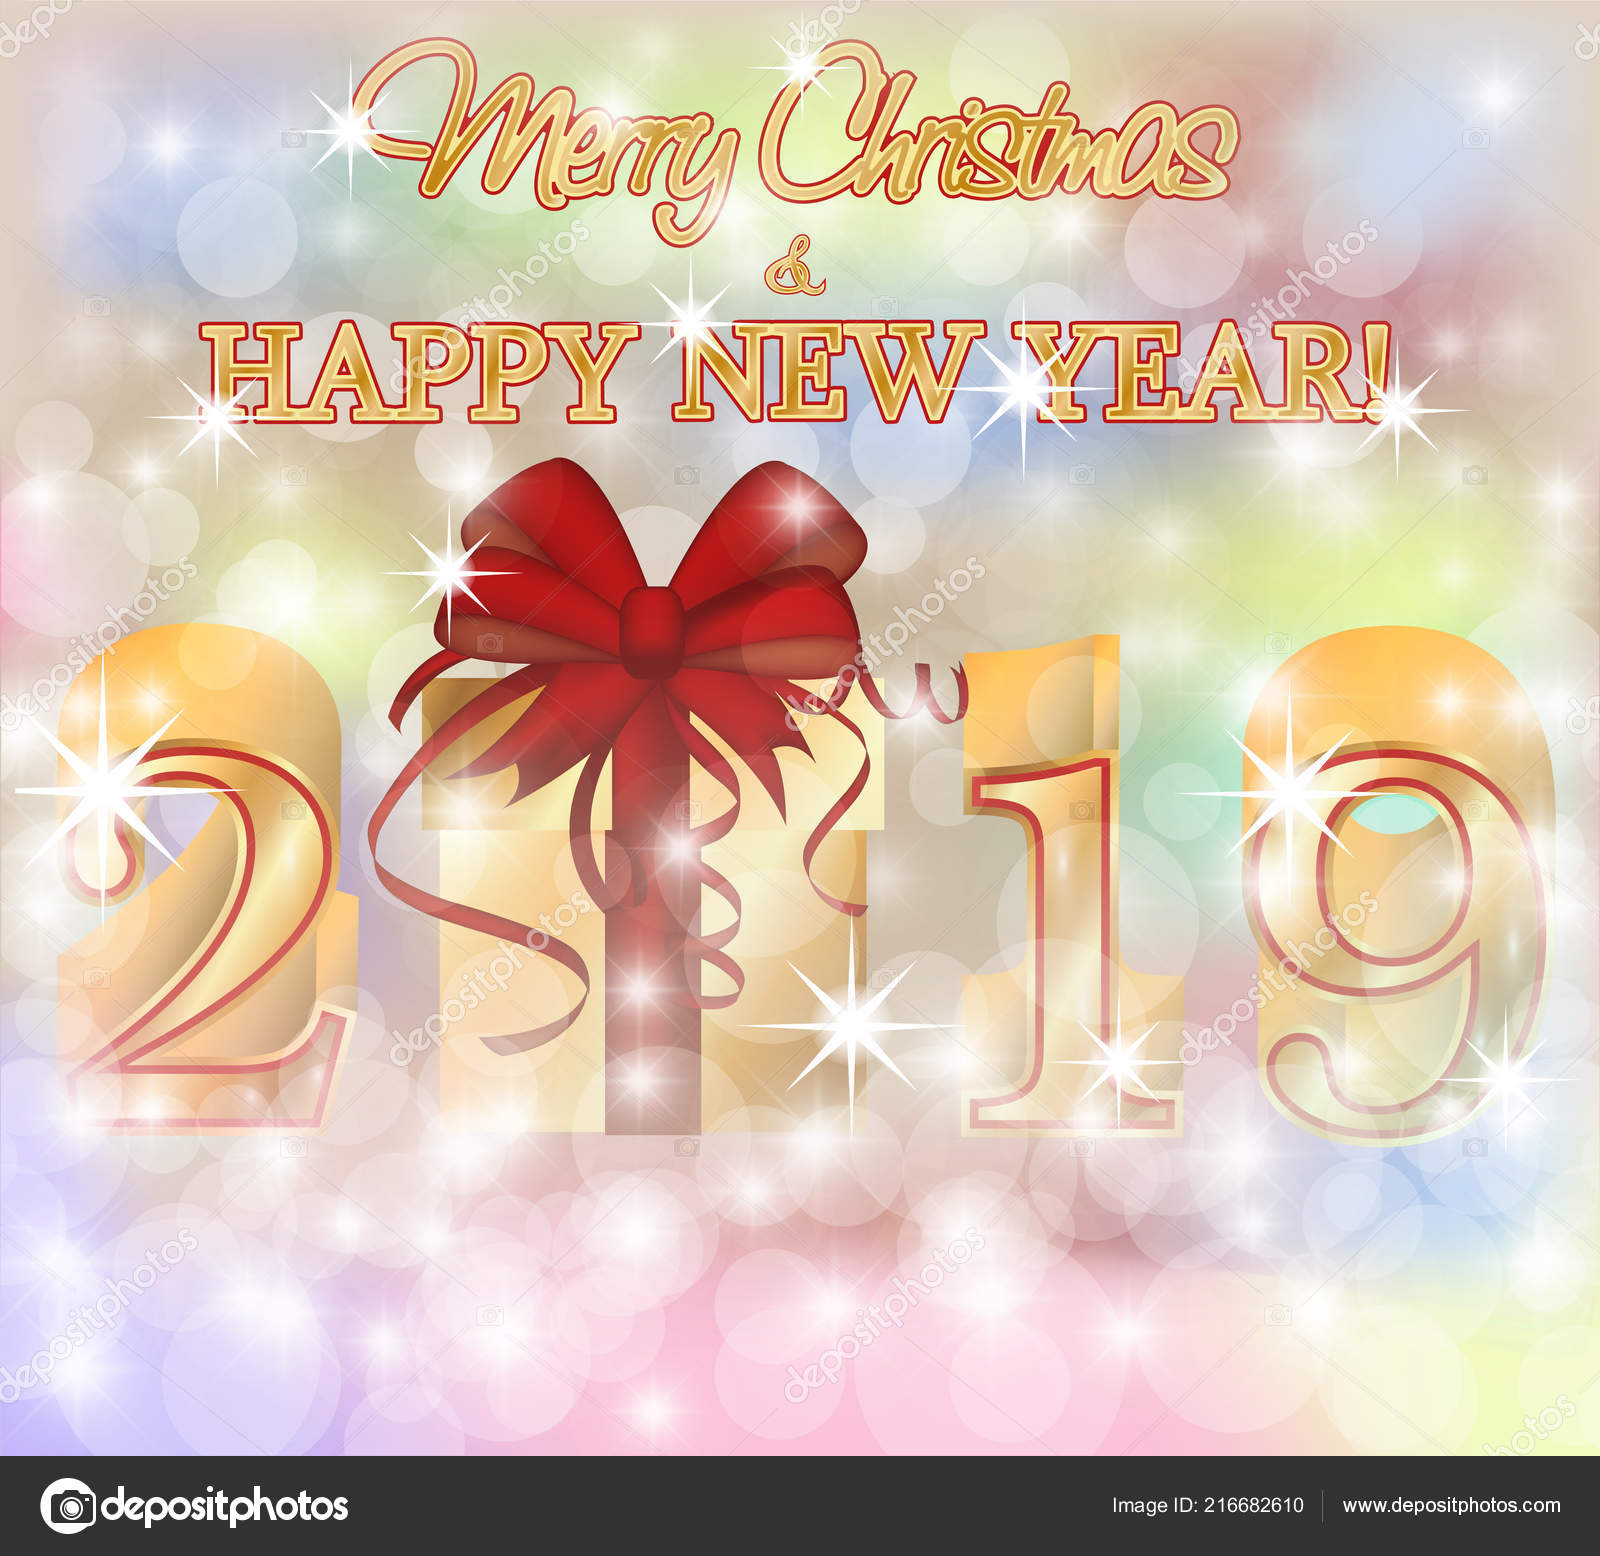 merry christmas and new year wallpaper merry christmas happy 2019 new year golden wallpaper vector illustration stock vector c carodi 216682610 https depositphotos com 216682610 stock illustration merry christmas happy 2019 new html